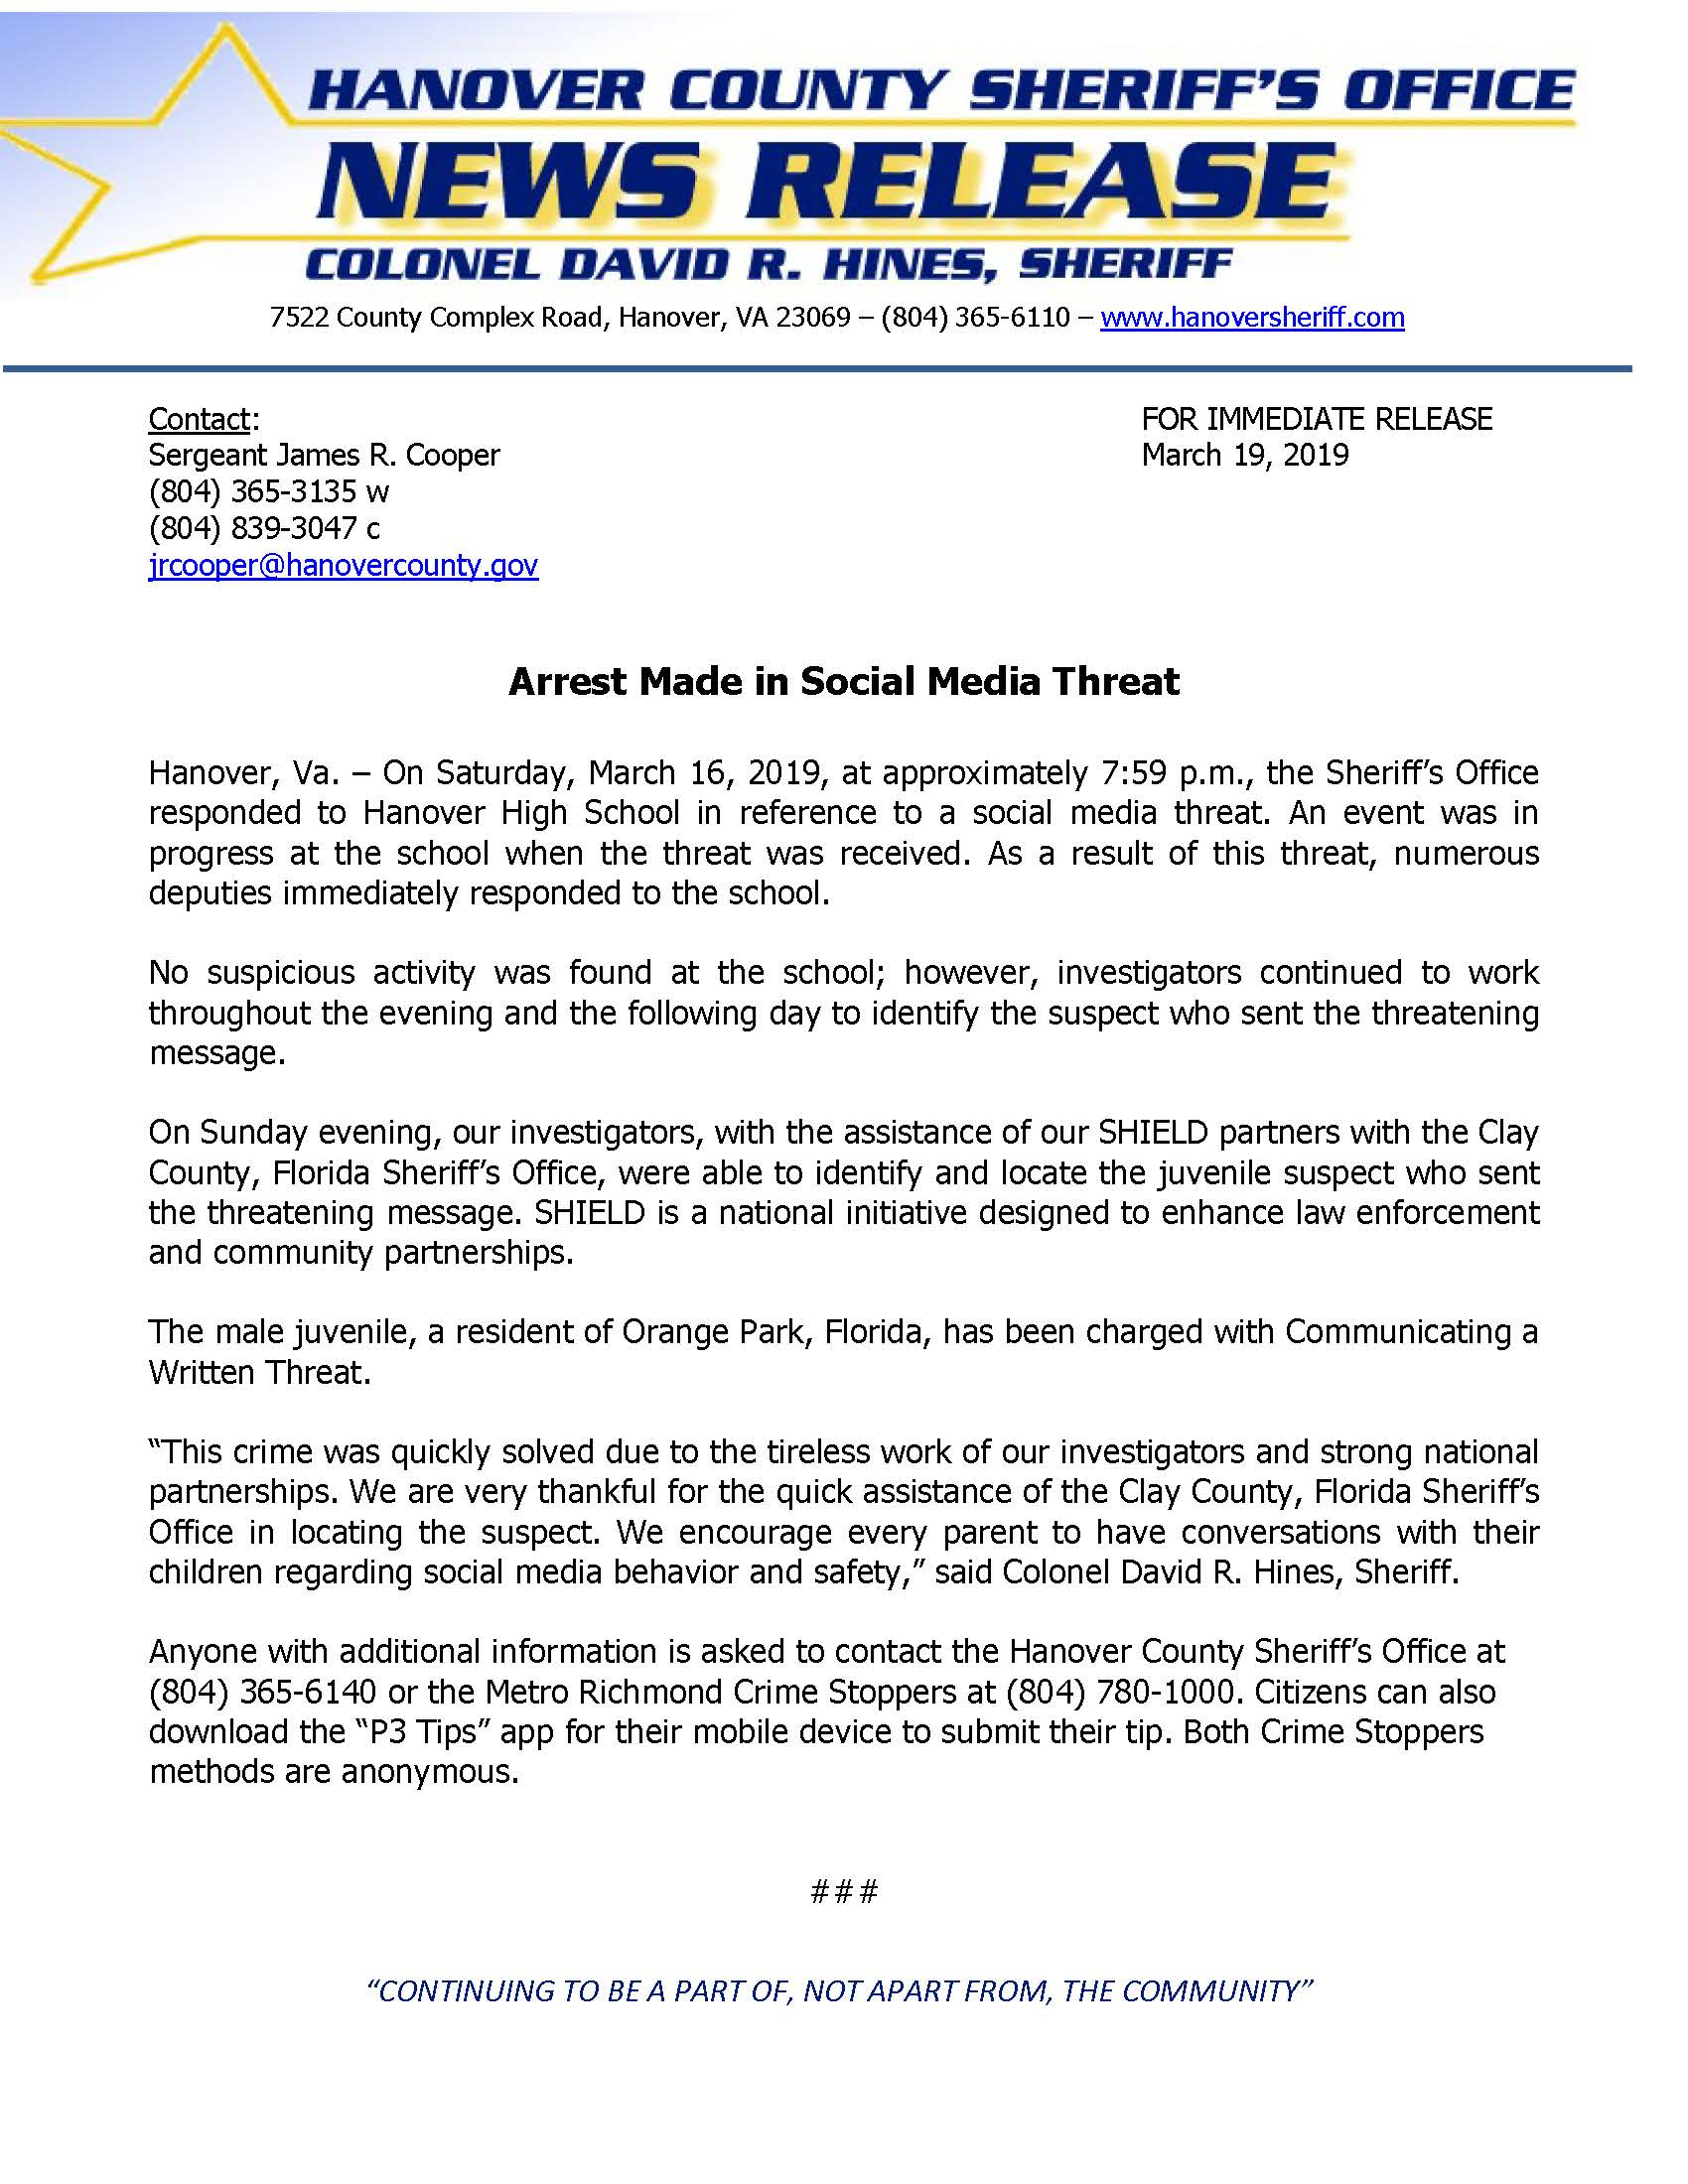 HCSO - Arrest Made in Social Media Threat- March 19, 2019